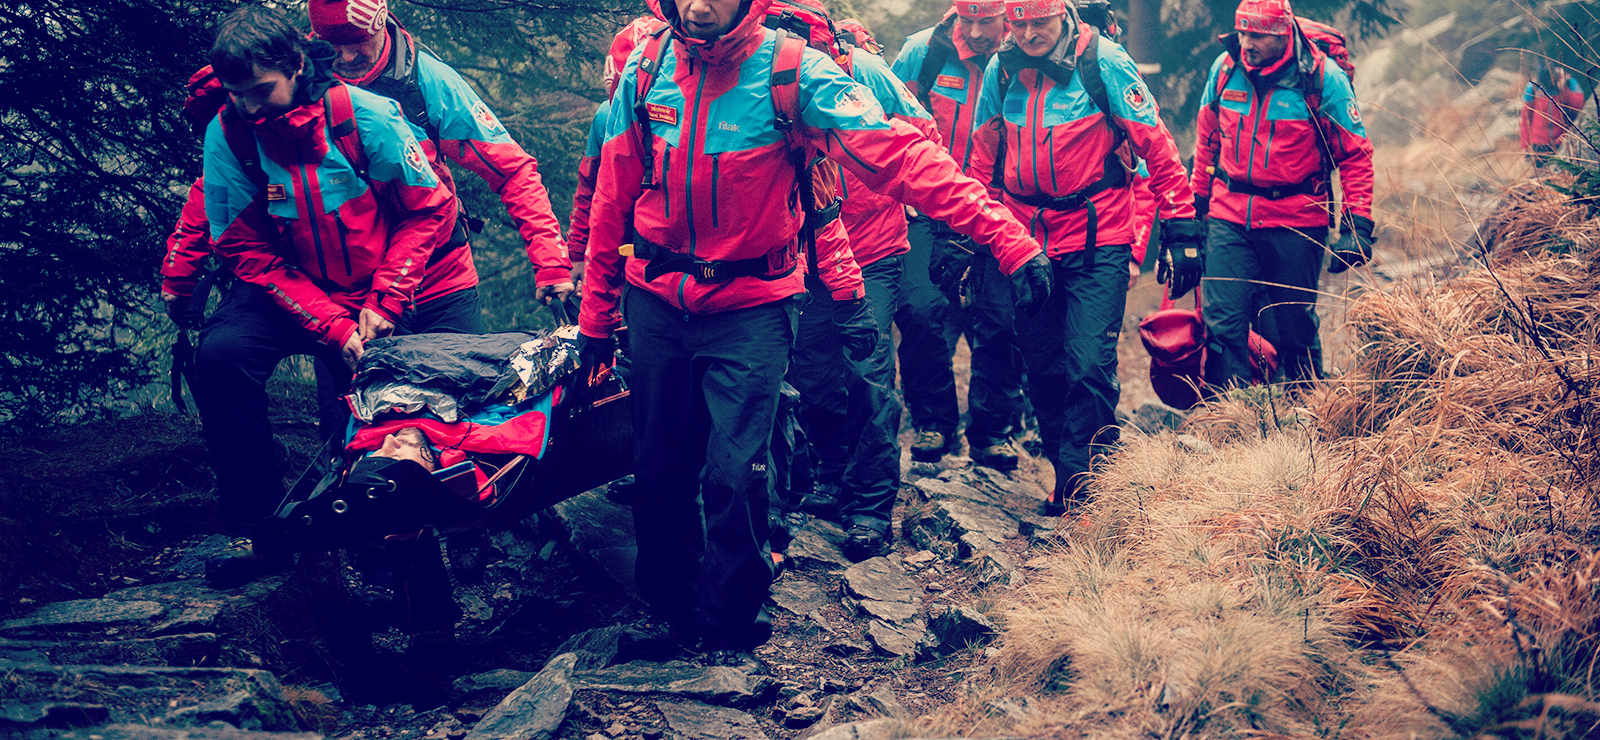 The Czech Mountain rescue team chose Tilak.